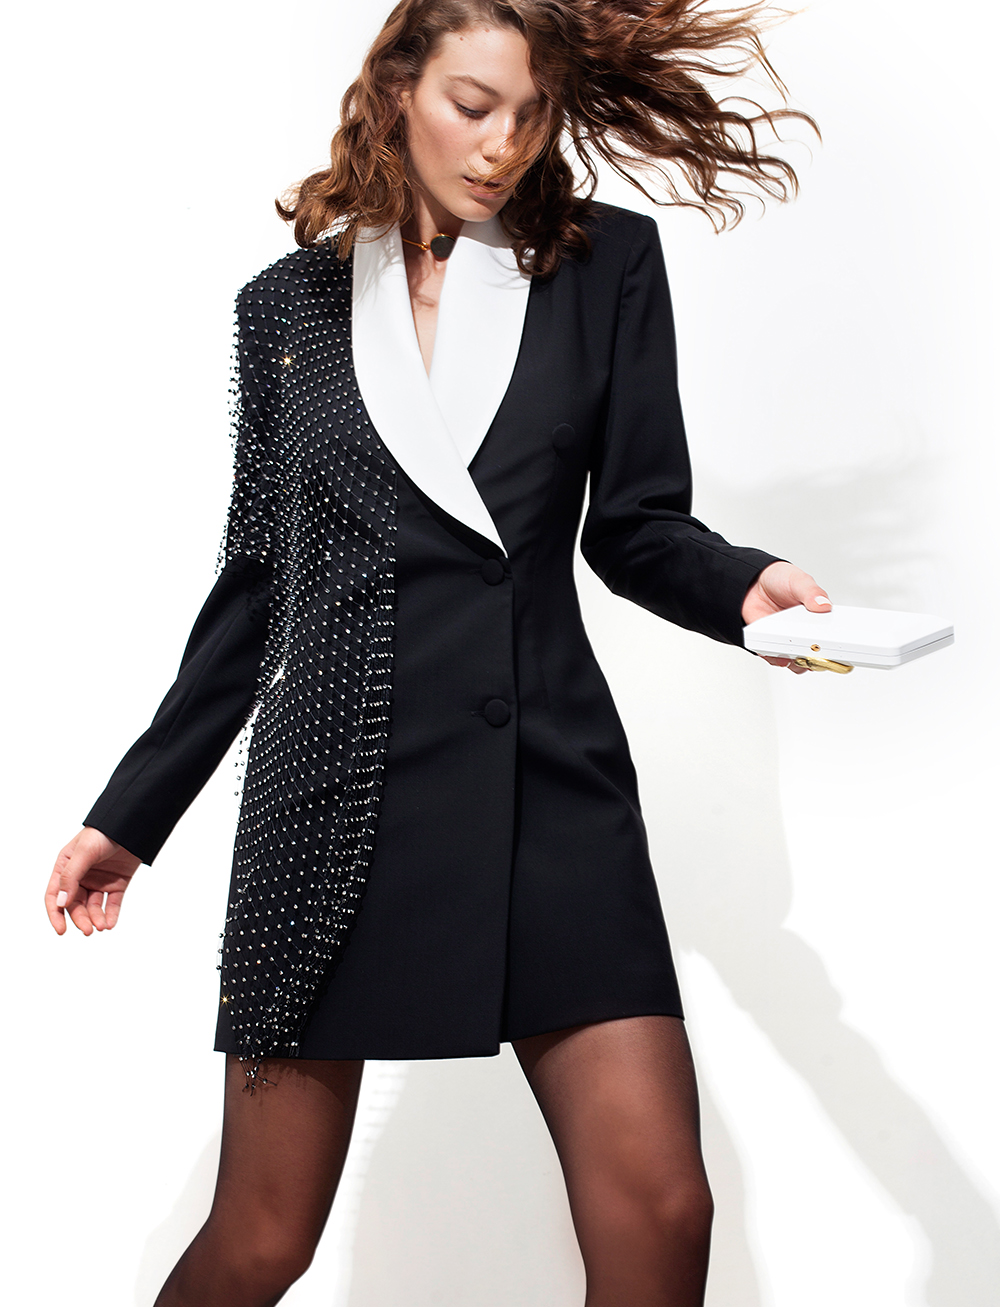 Cazino Dress by Manurí on curated-crowd.com